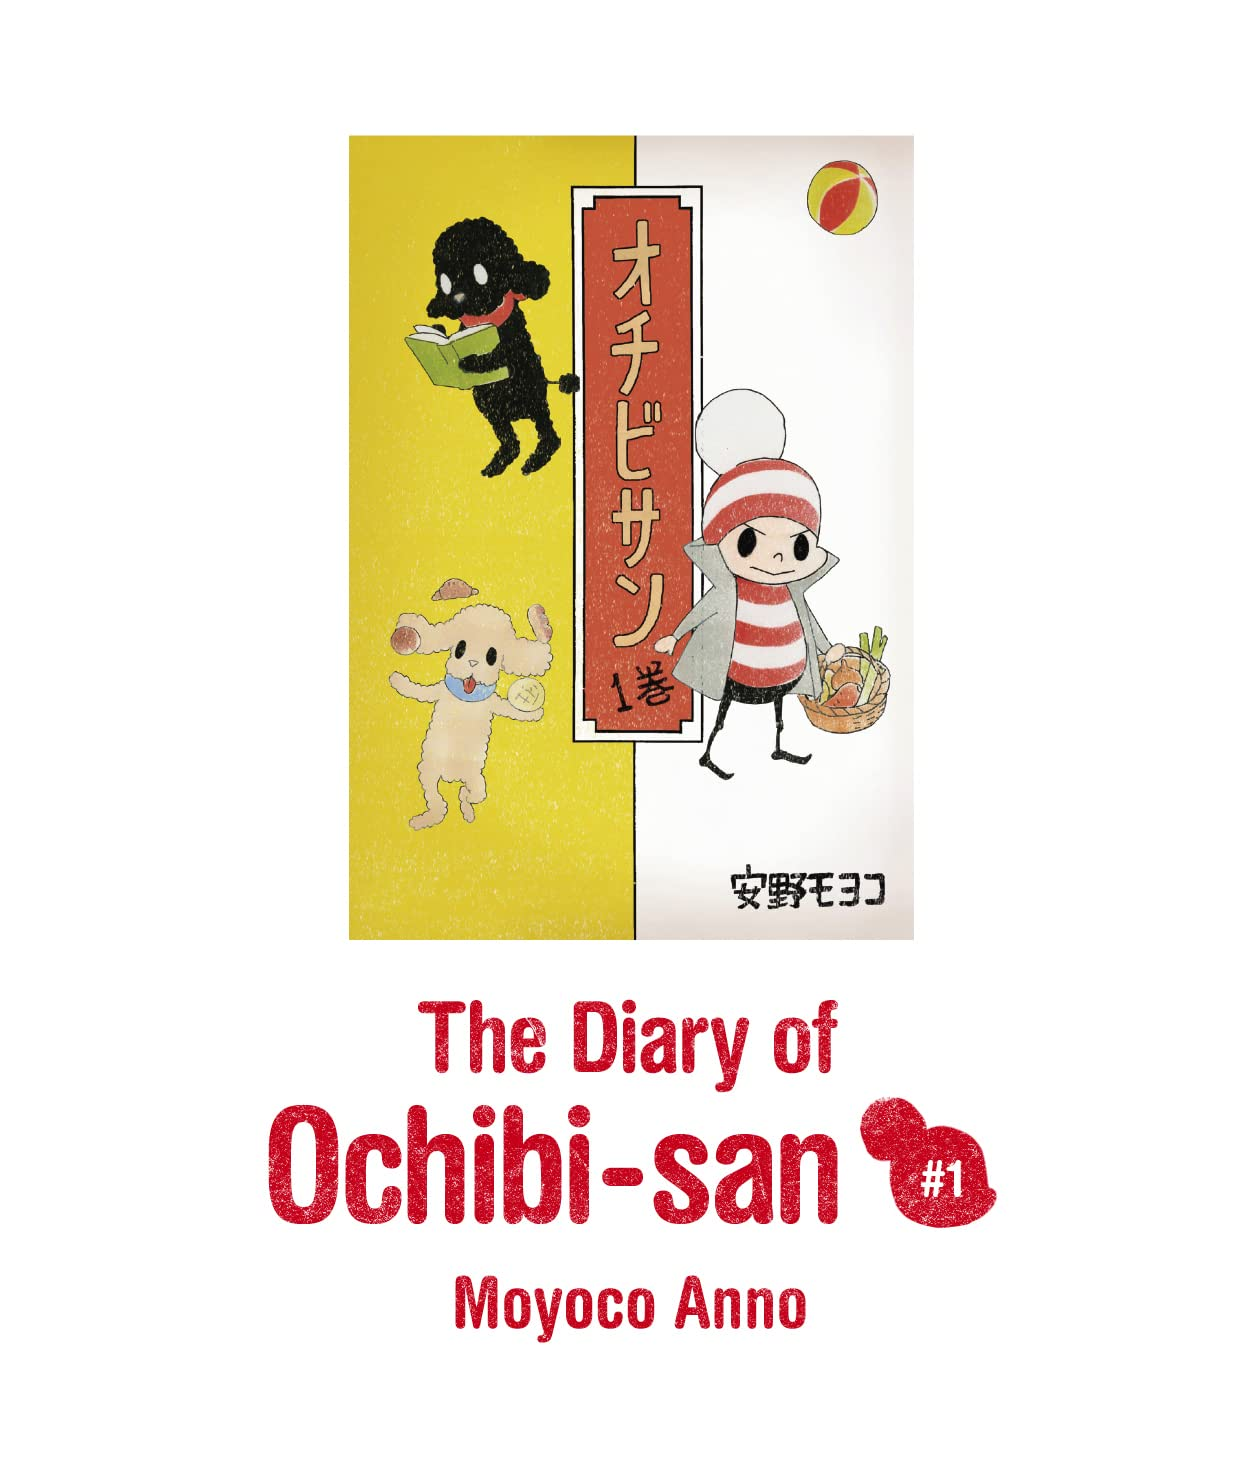 The Diary of Ochibi (English Edition) Vol. 1